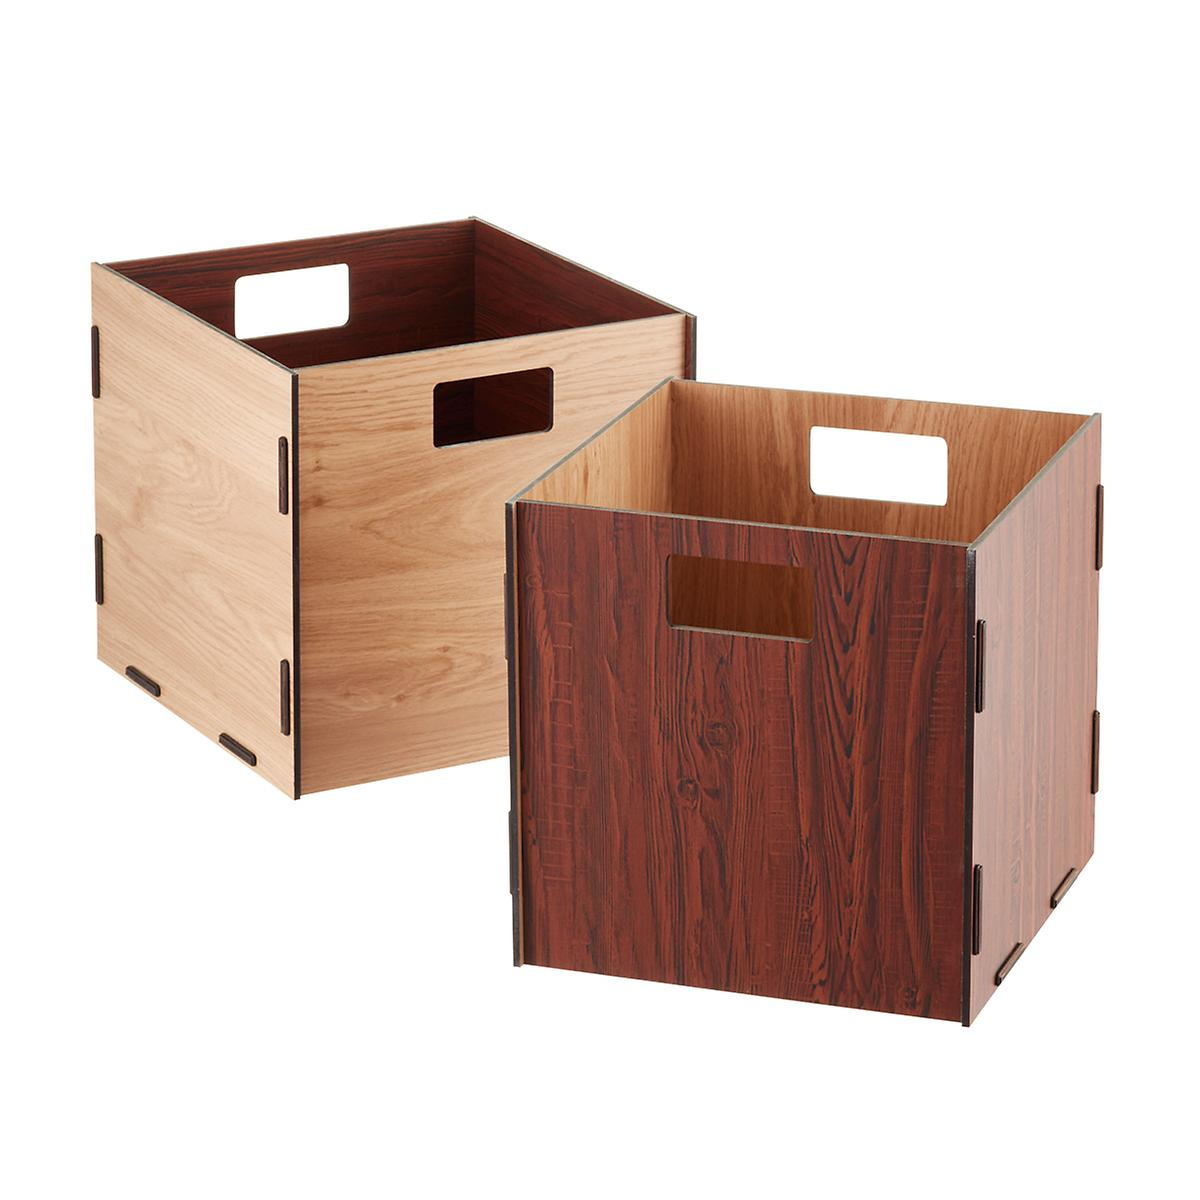 Natural cherry reversible wooden storage cube with